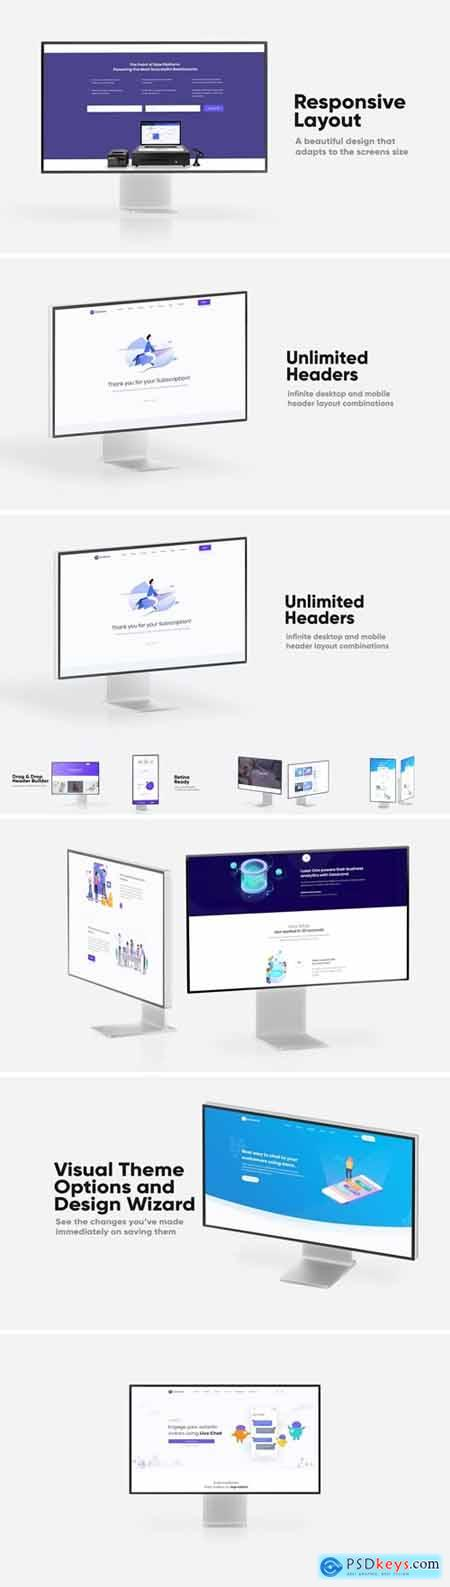 Pro Display XDR Mockup Pack